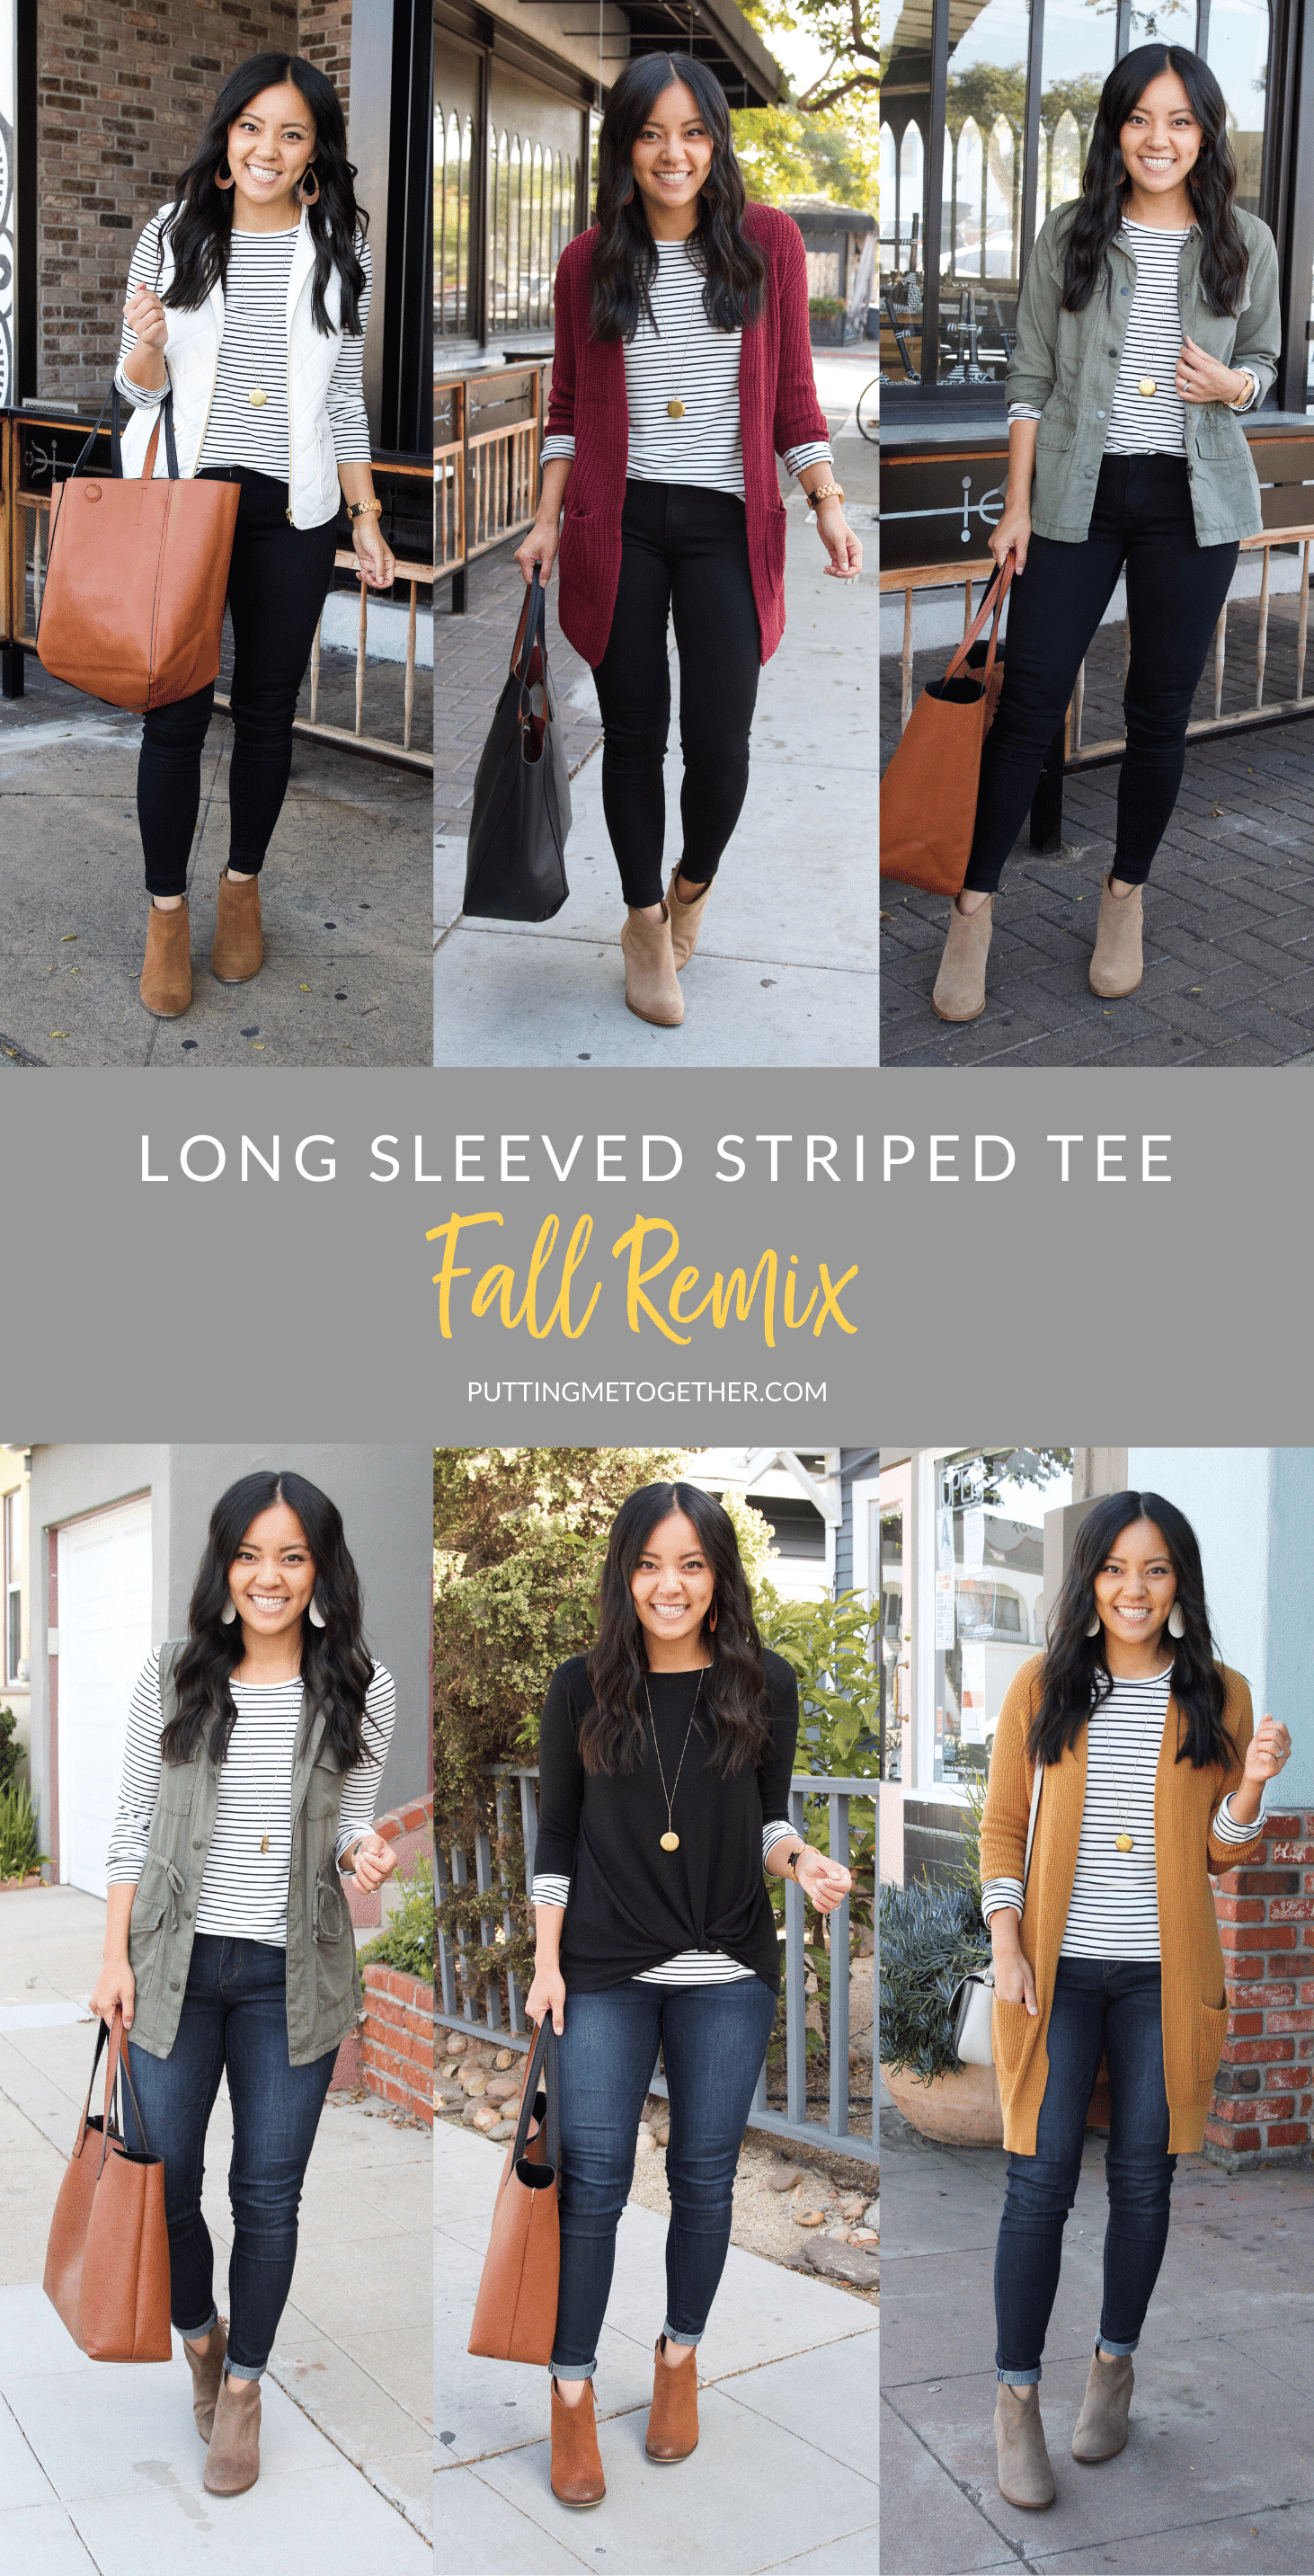 Long Sleeved Striped Tee Outfits